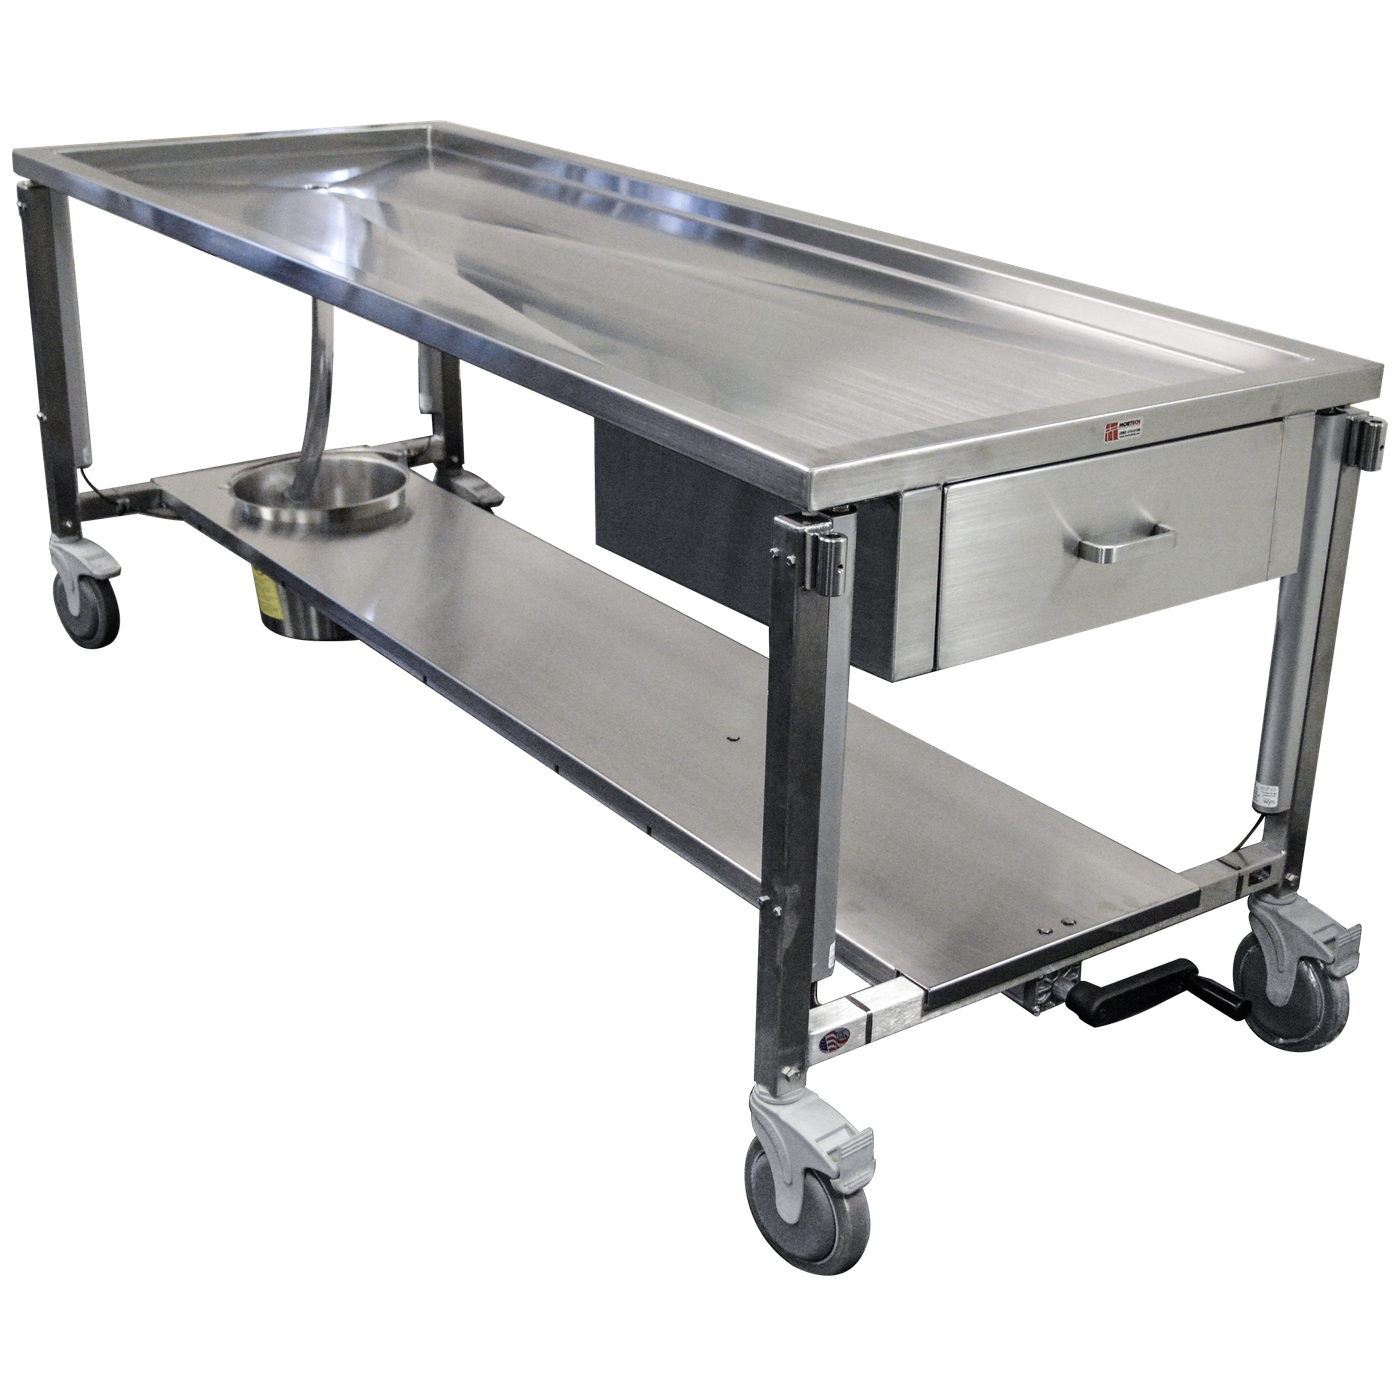 Dissection Table with Hydraulic Height Adjustment-Anatomy Dissection Tables-Mortech Manufacturing Company Inc. Quality Stainless Steel Autopsy, Morgue, Funeral Home, Necropsy, Veterinary / Anatomy, Dissection Equipment and Accessories